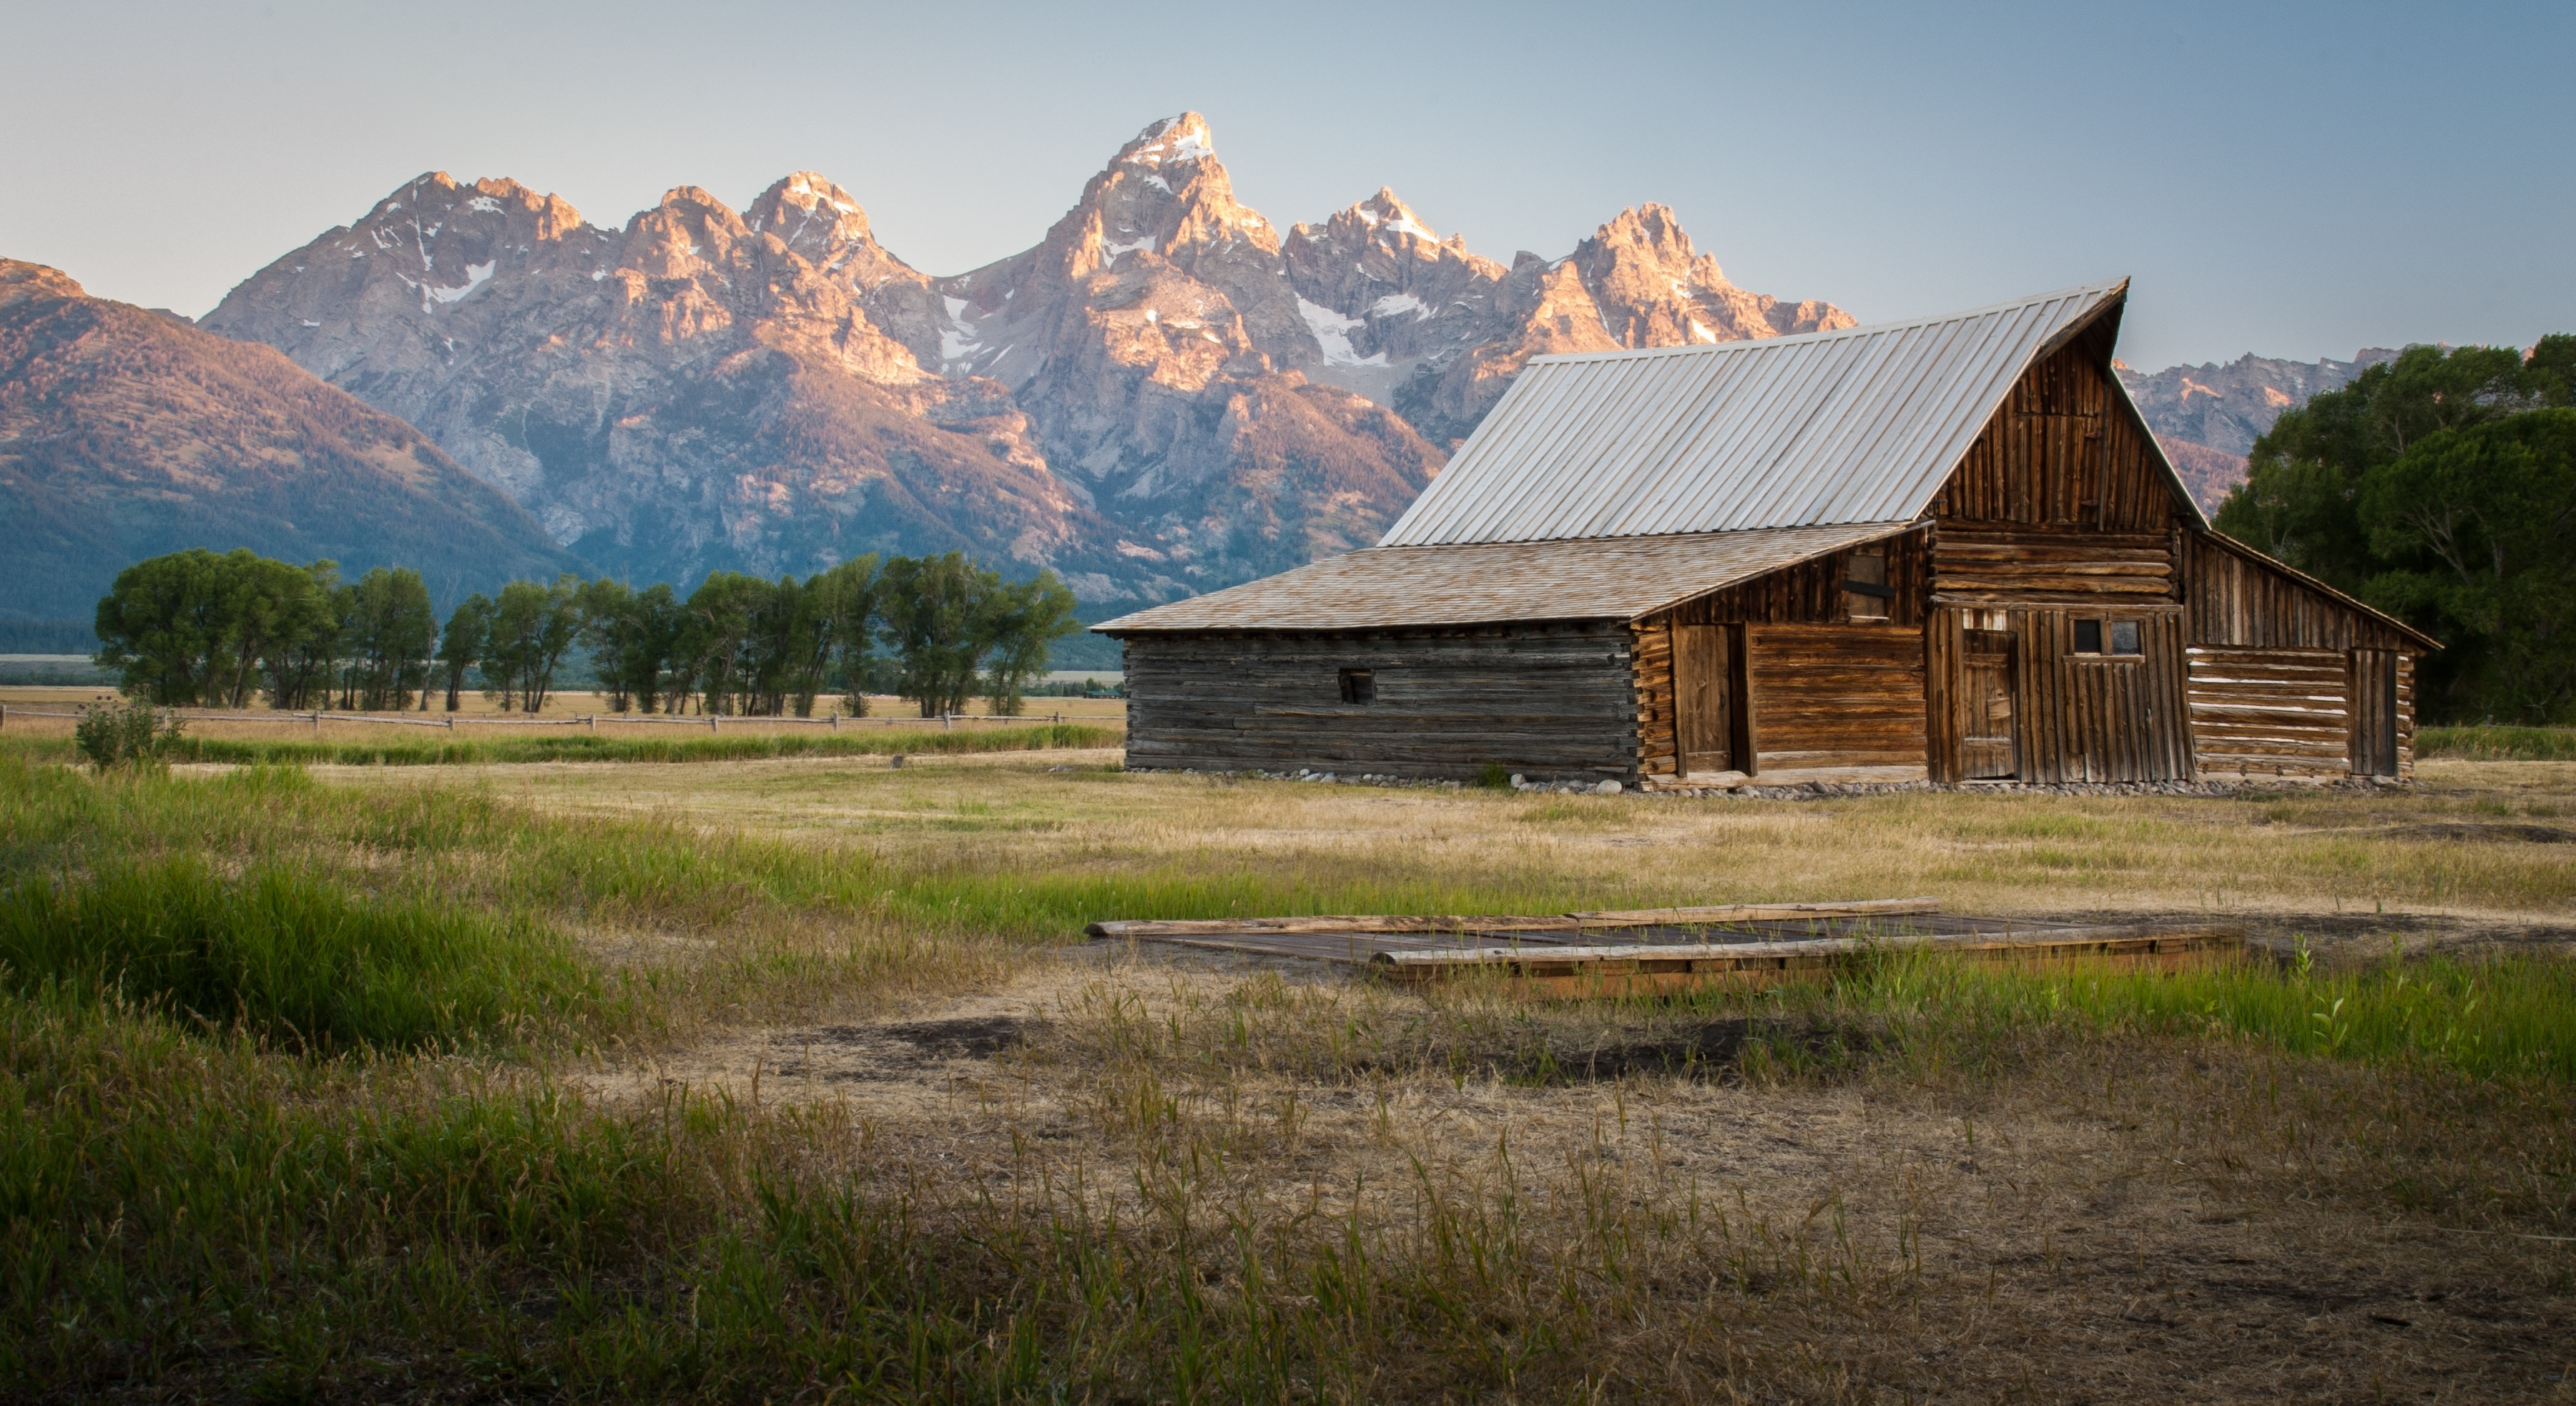 Activities in Jackson Hole